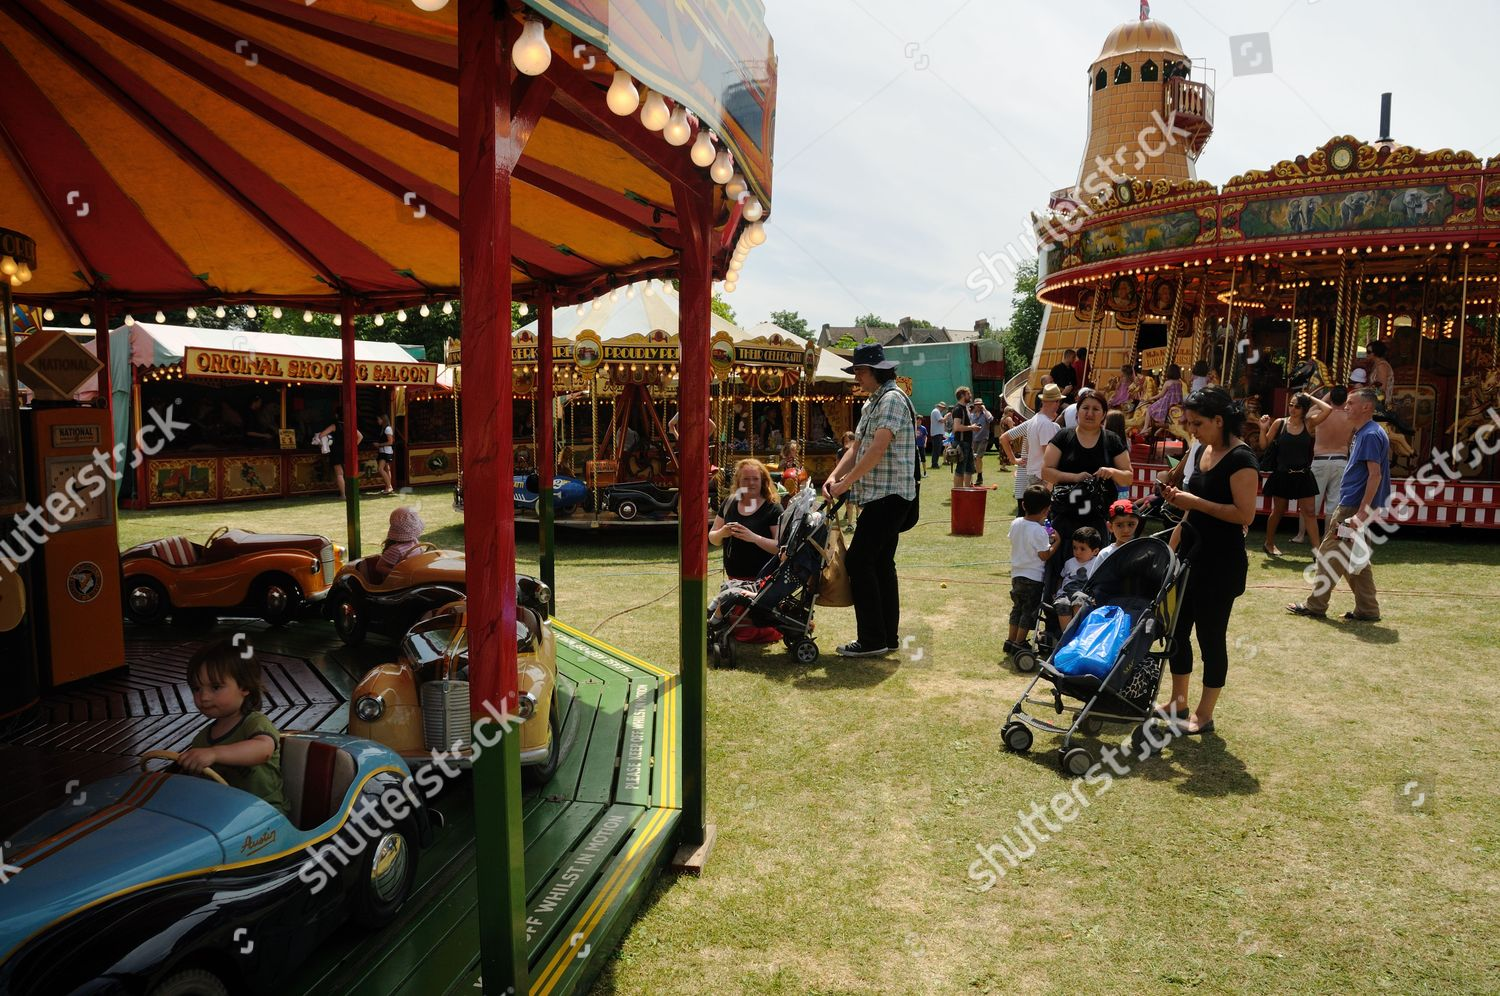 People Watch Rides Carters Steam Fair London Editorial Stock Photo